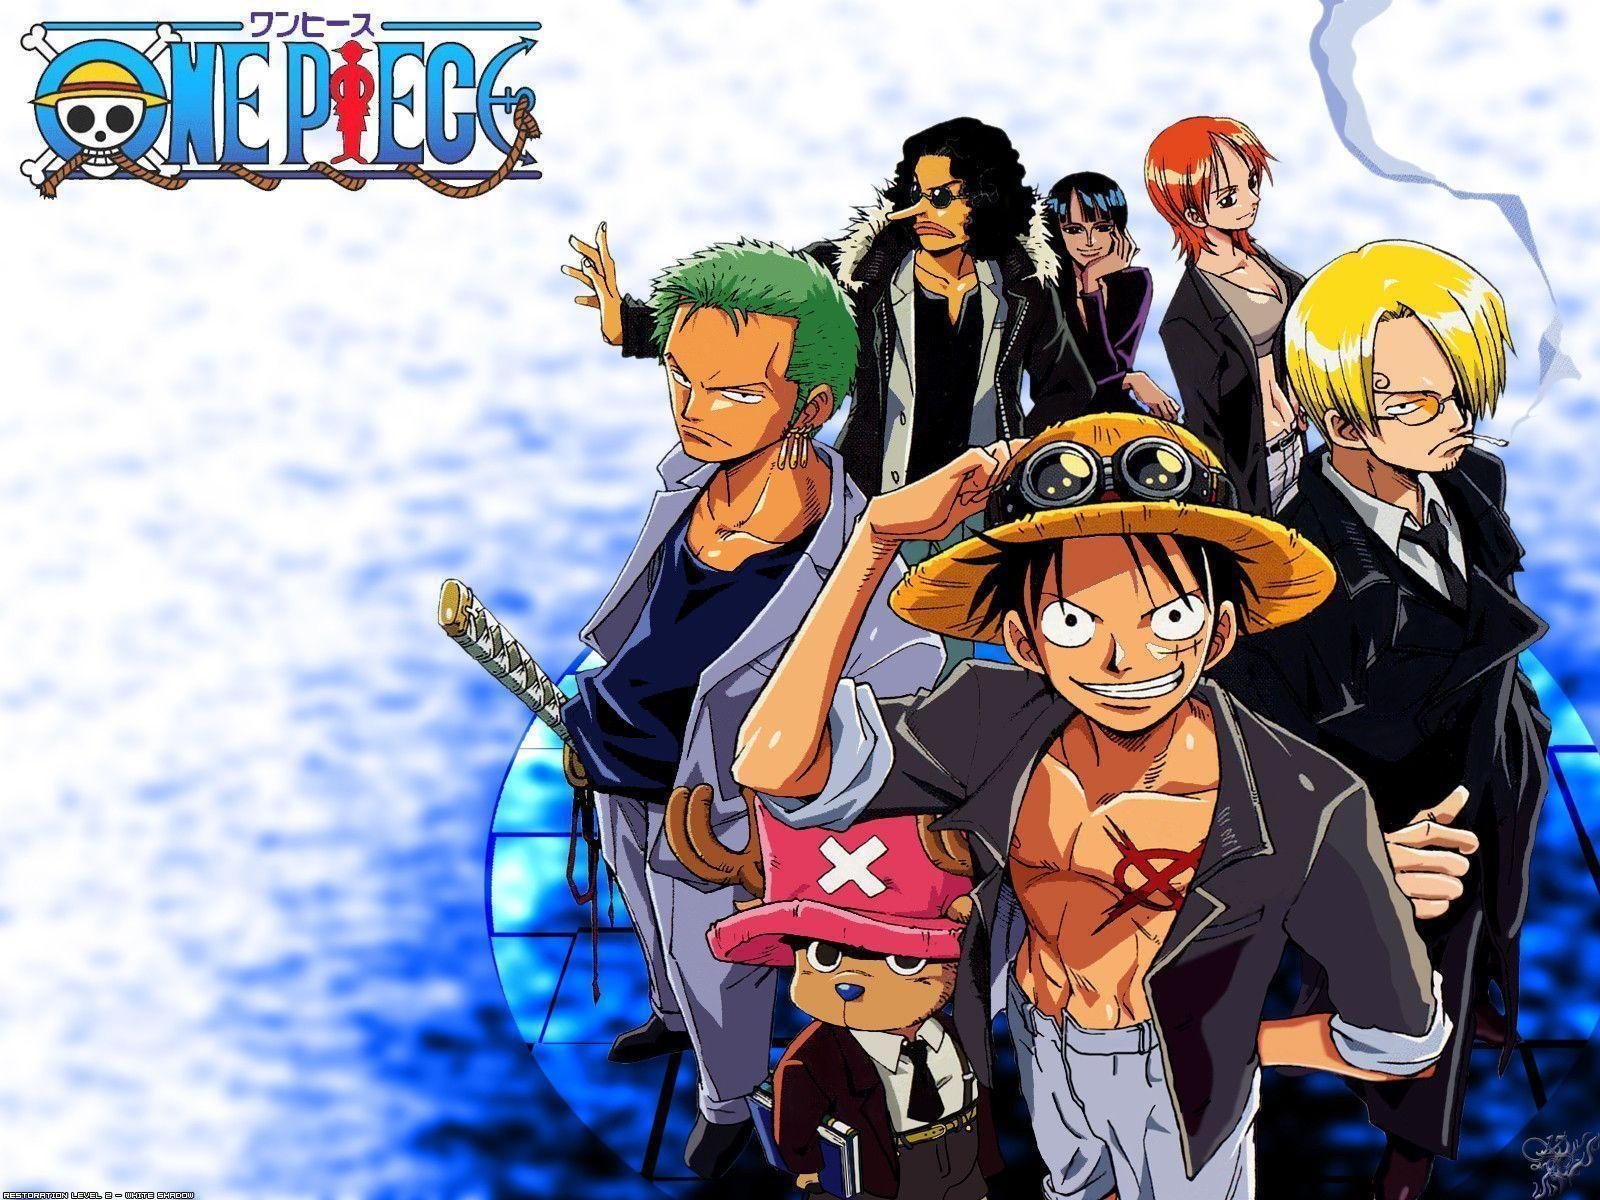 One Piece Anime Wallpapers Top Free One Piece Anime Backgrounds Wallpaperaccess